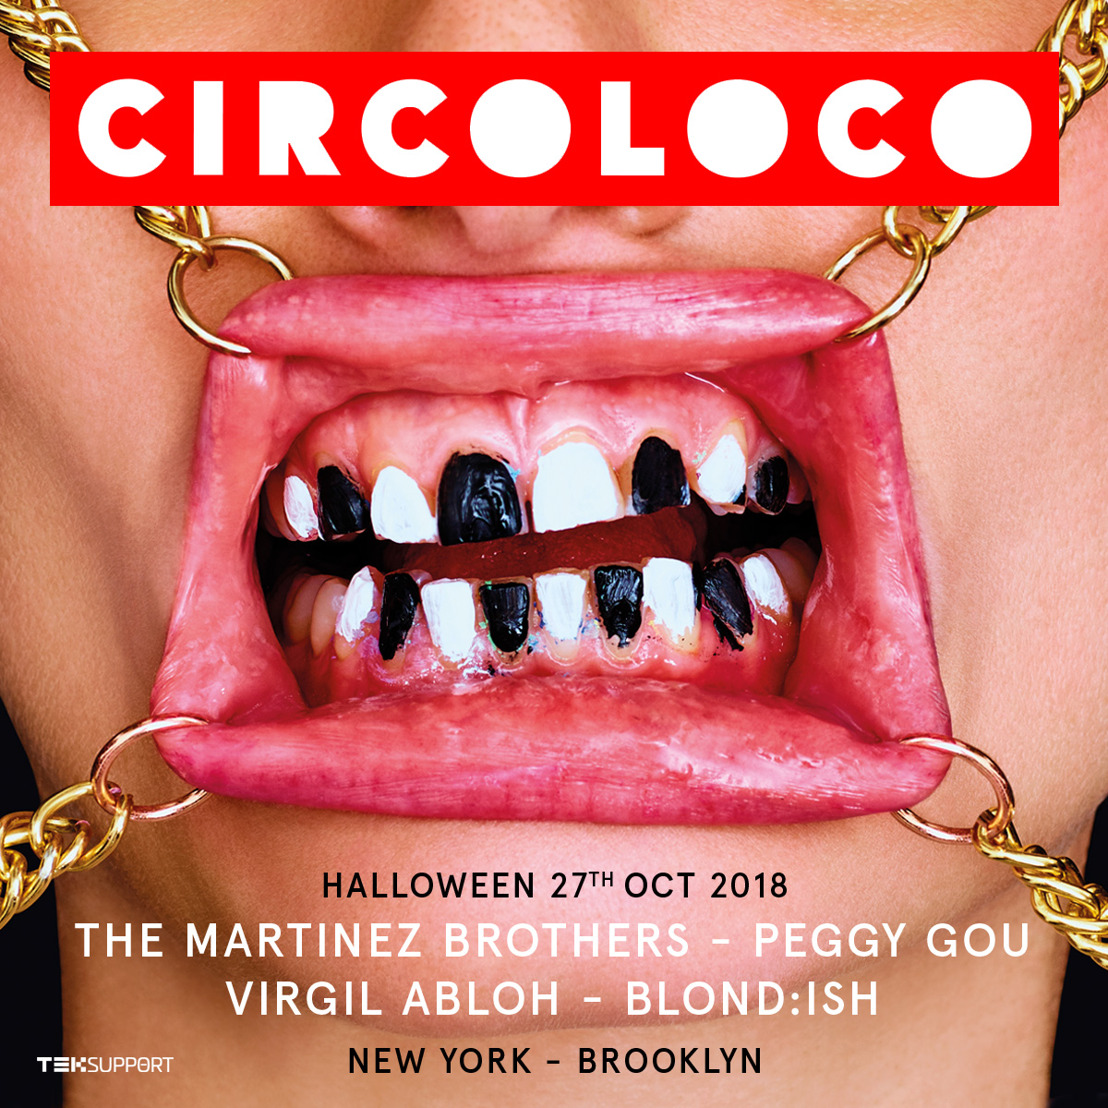 Teksupport Announces Circoloco Halloween on October 27